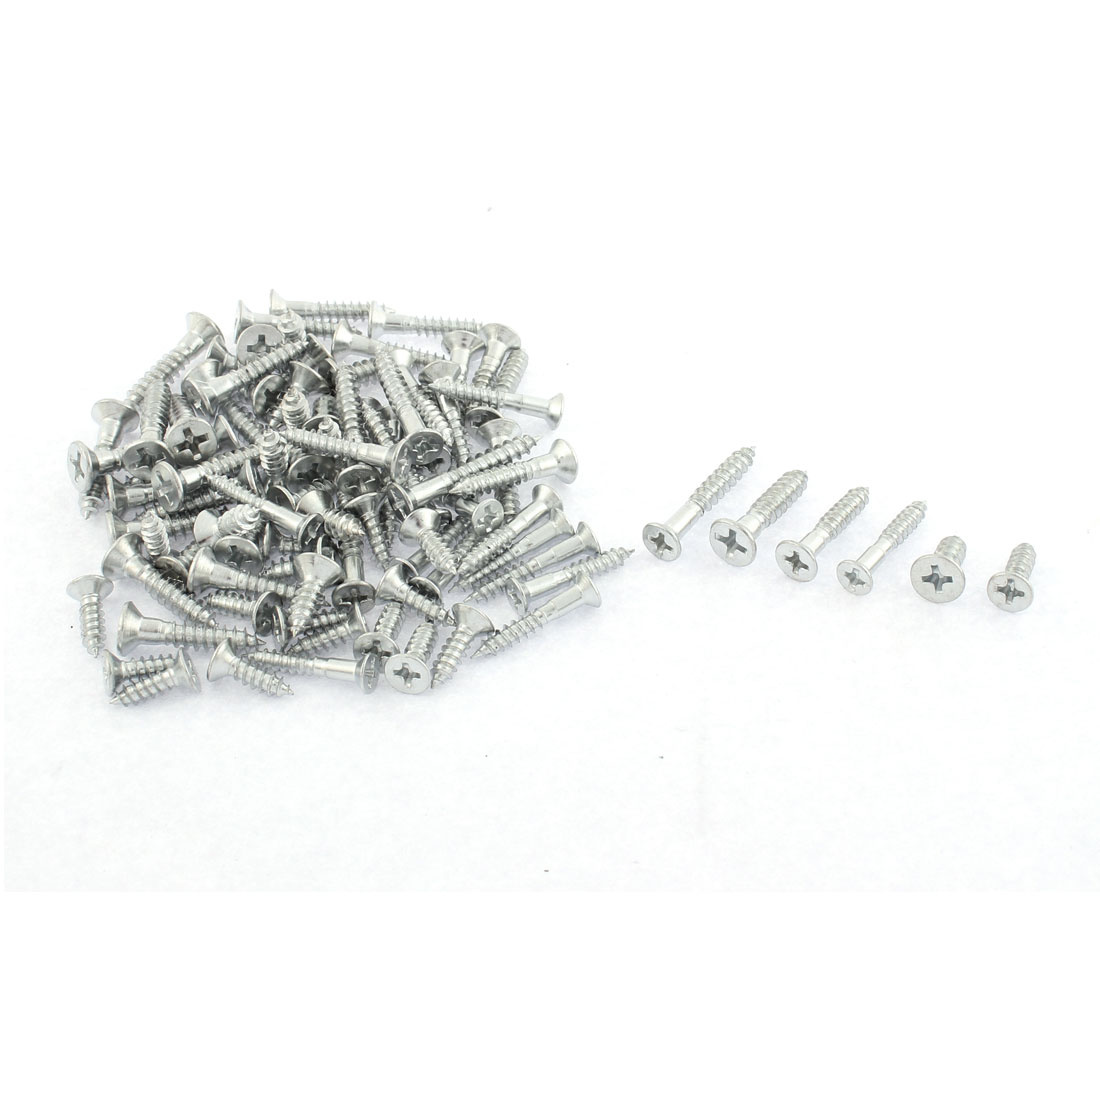 65pcs Phillips Head Self Drilling Tapping Screws Assortment Set